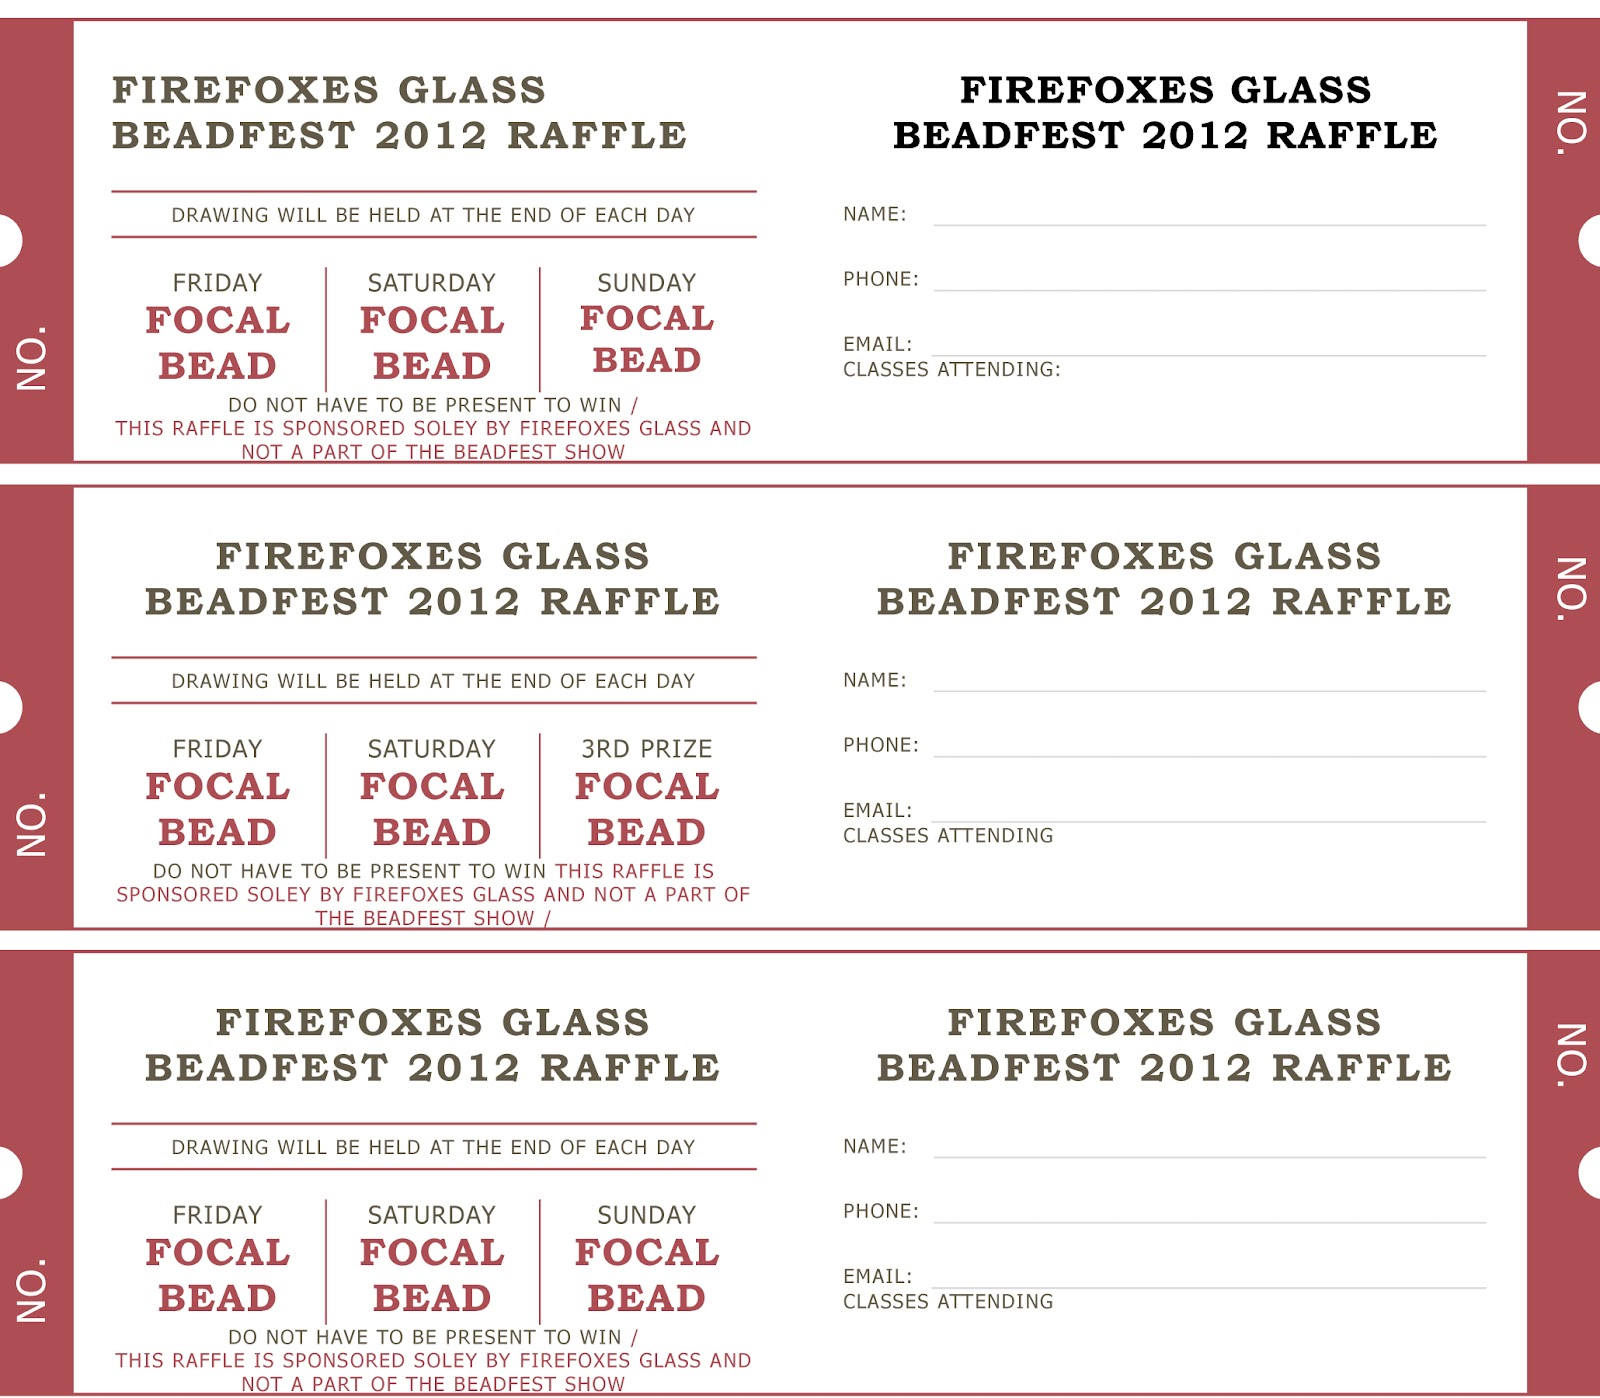 Raffle Tickets Samples Or Ideas http://www.firefoxesglass.com/2012_08_01_archive.html